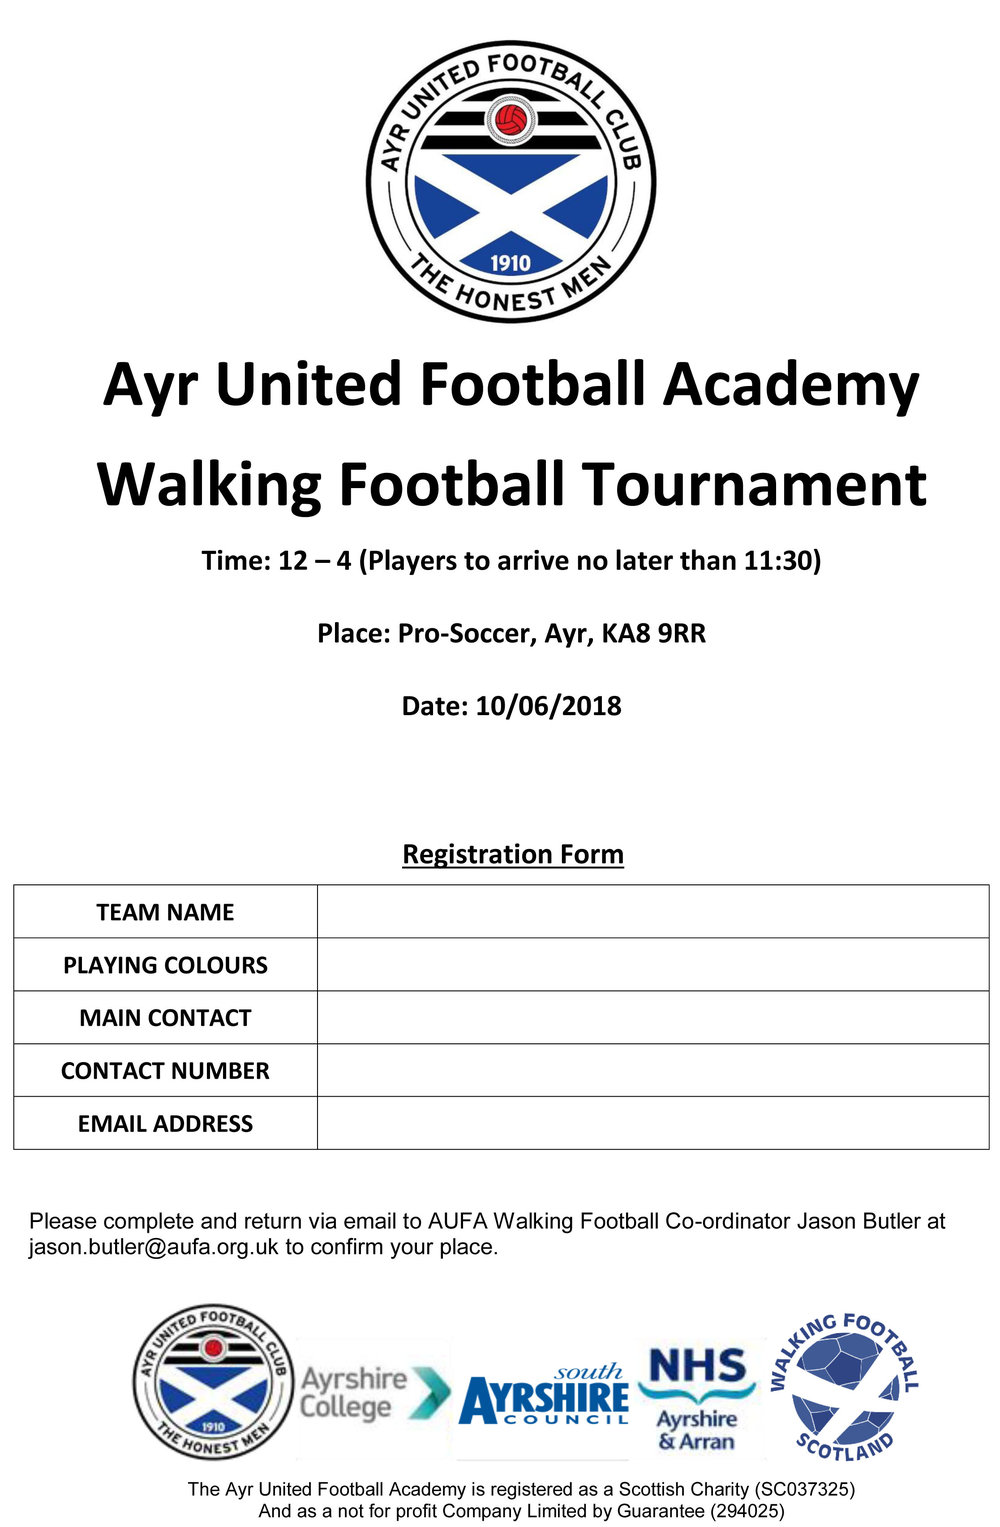 AUFA Walking Football Registration Form (2).jpg